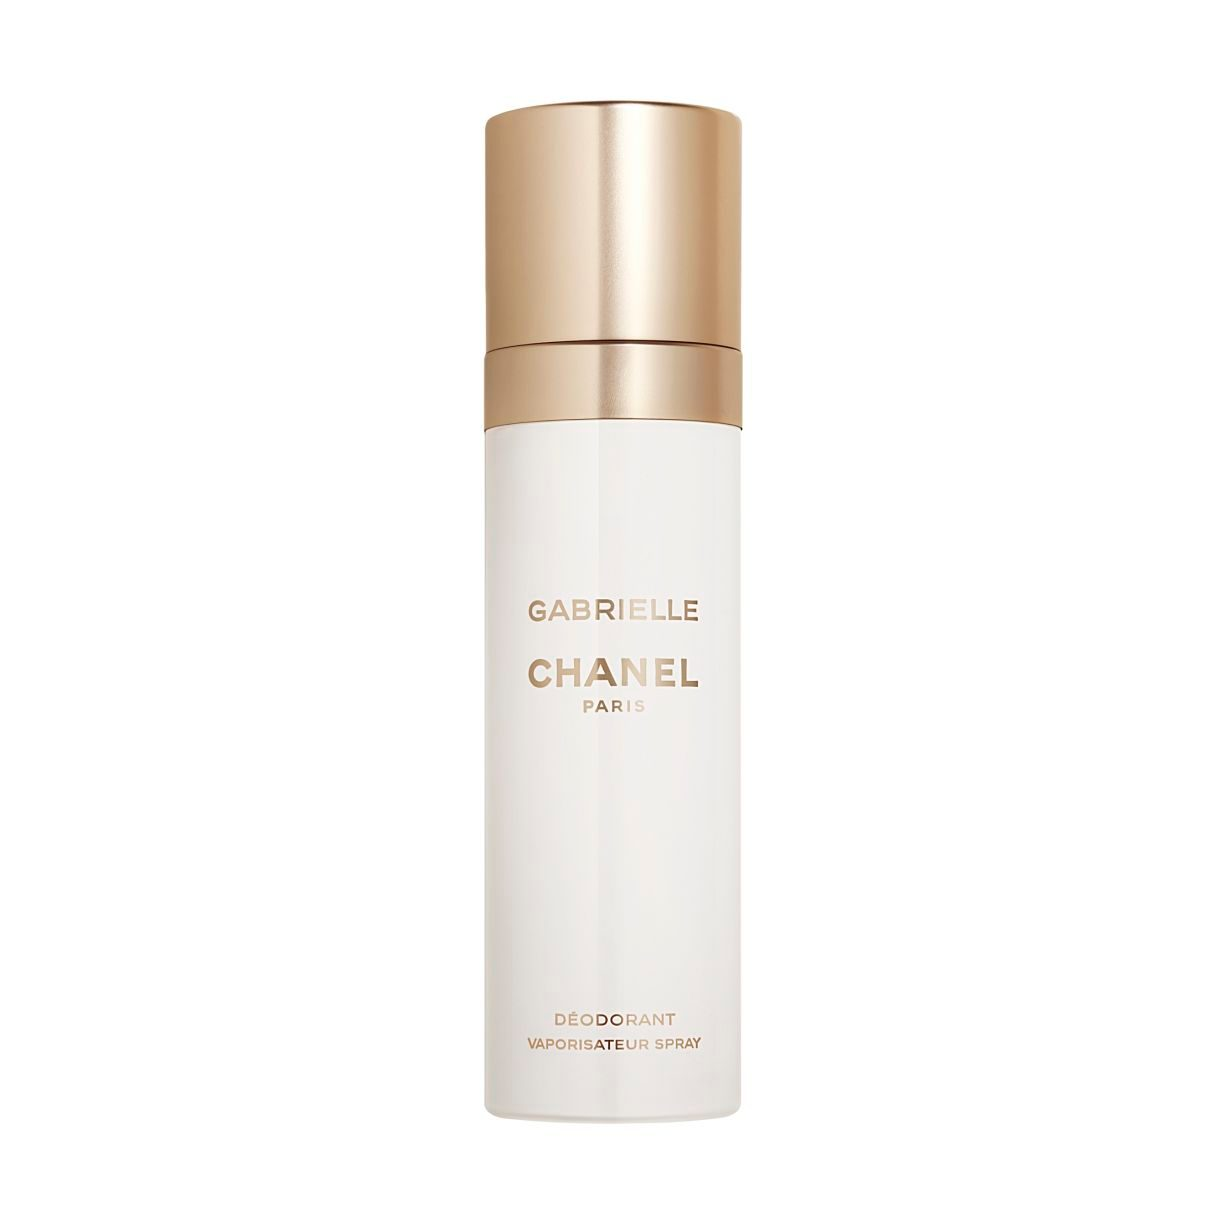 GABRIELLE CHANEL DEODORANT SPRAY